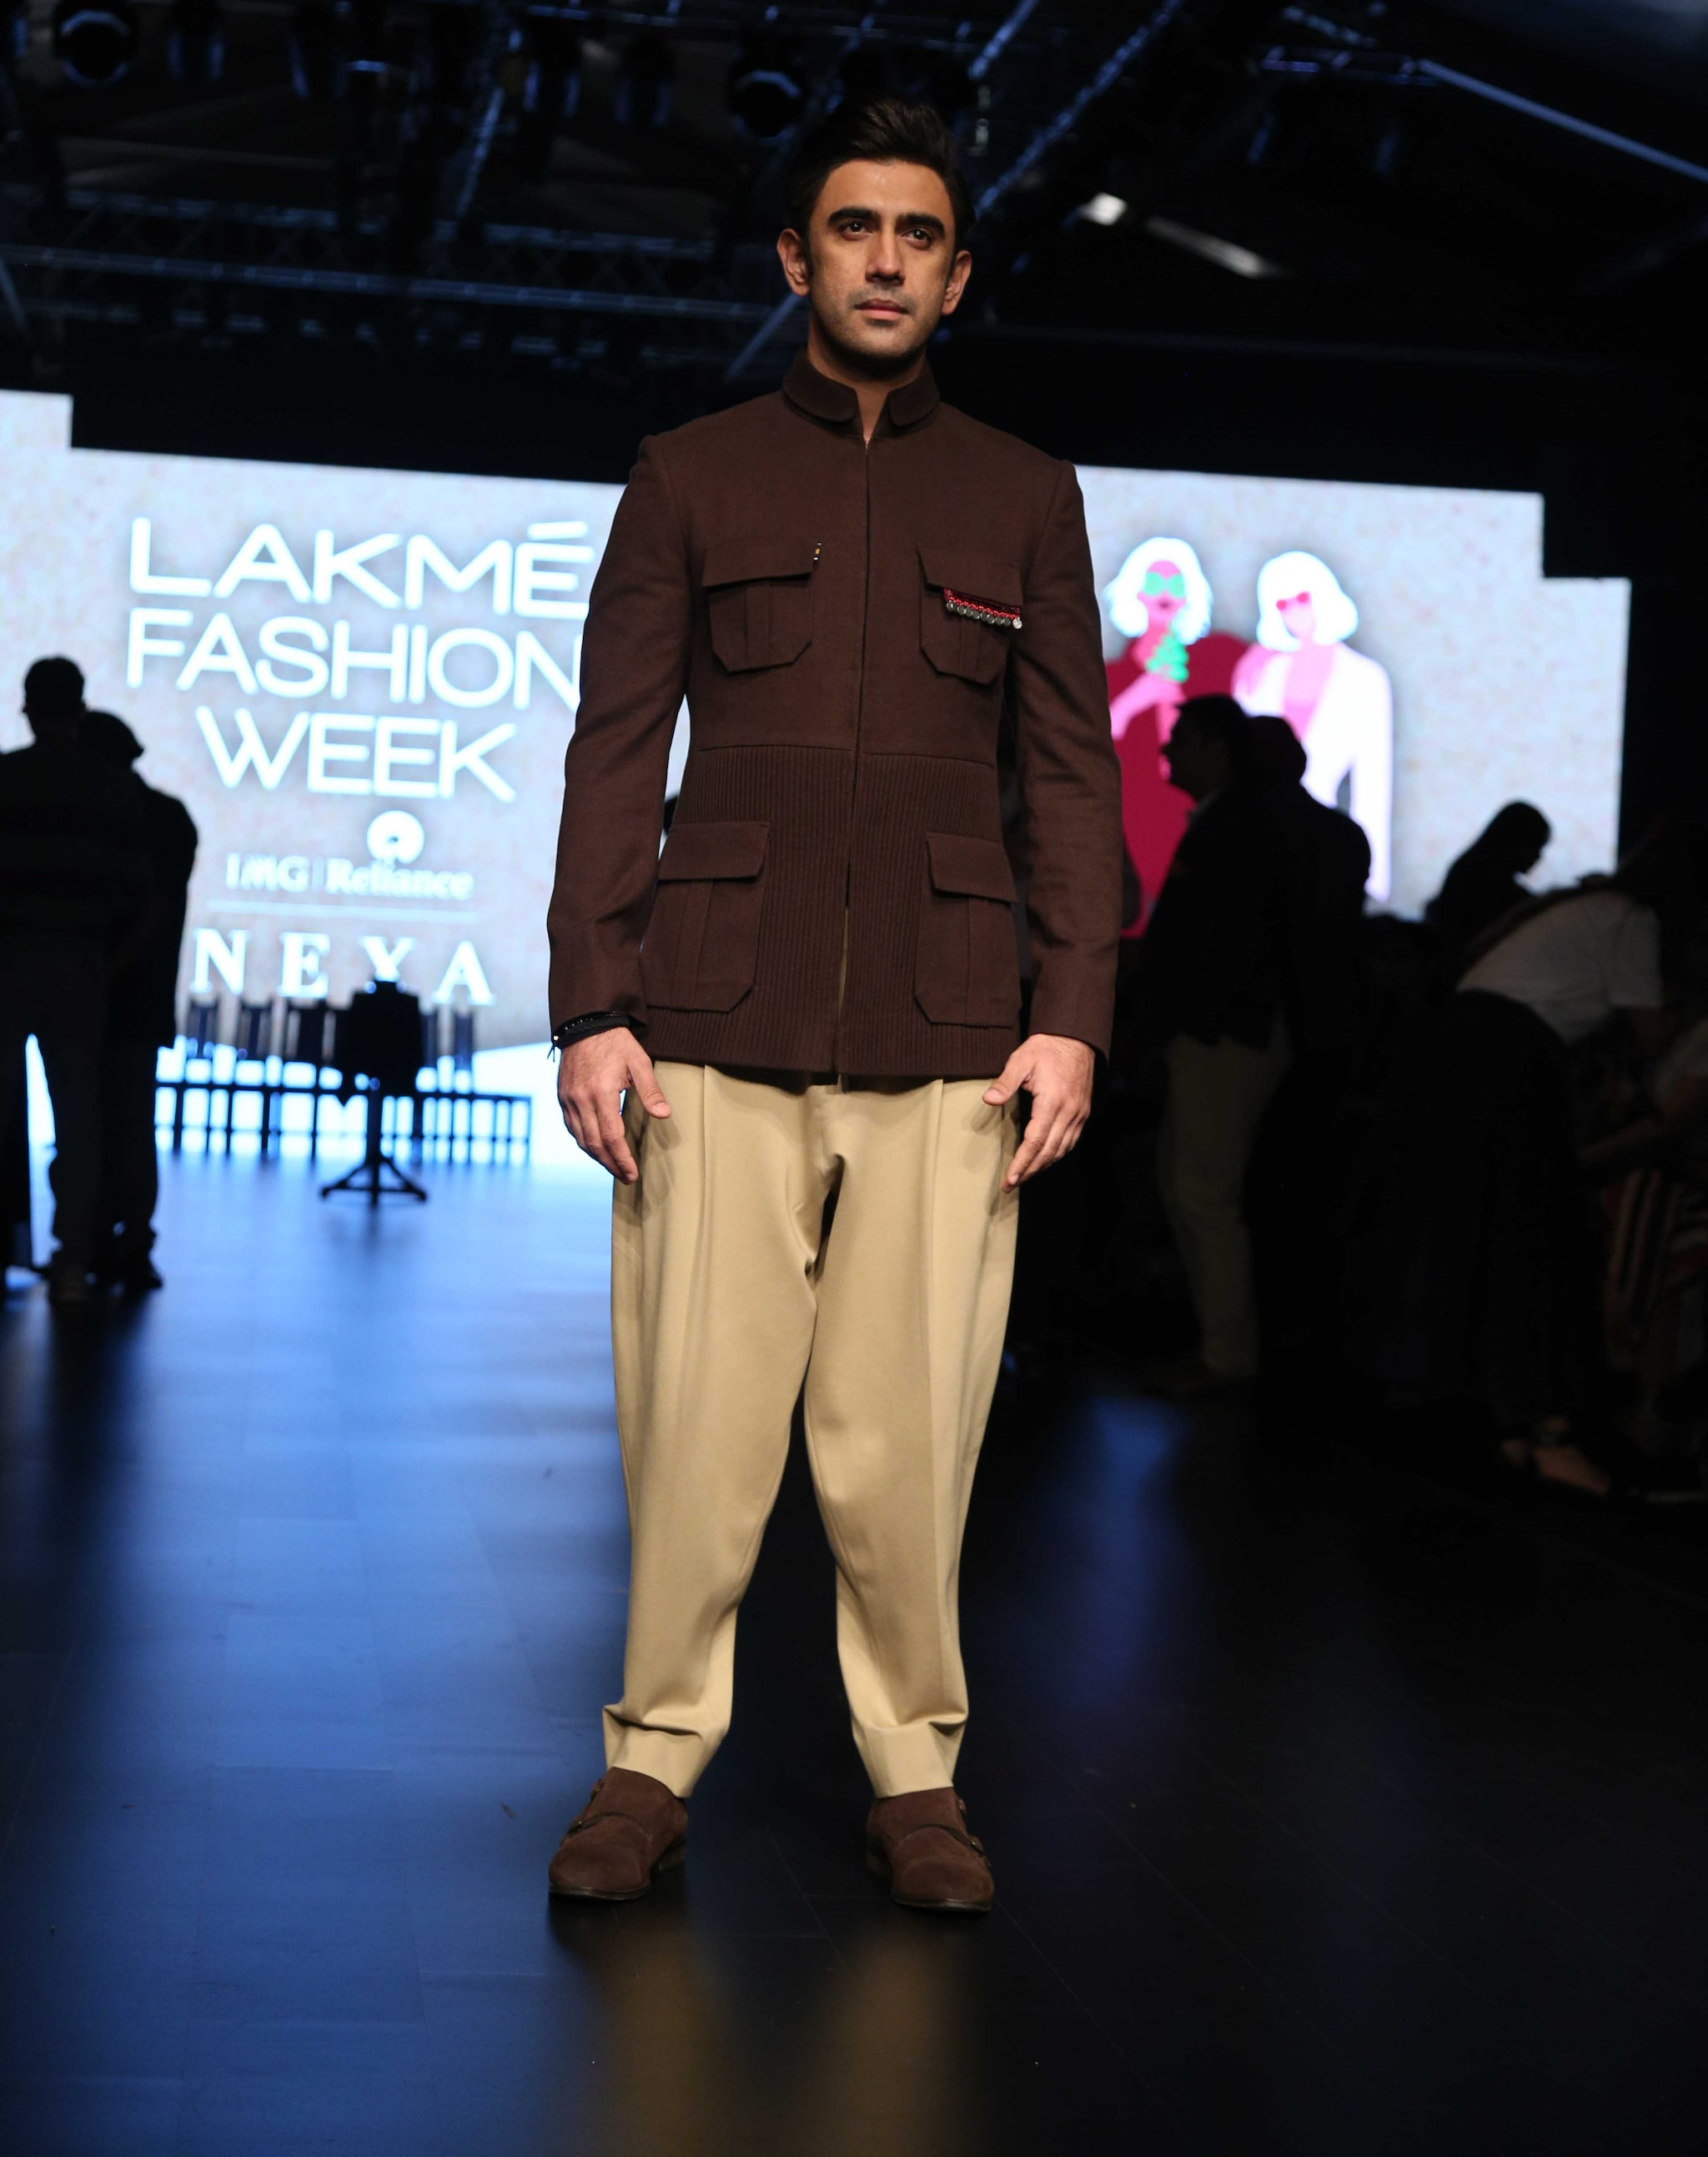 ede88c8eb570 Lakme Fashion Week 2018  People Who Believe In Themselves Are Our ...